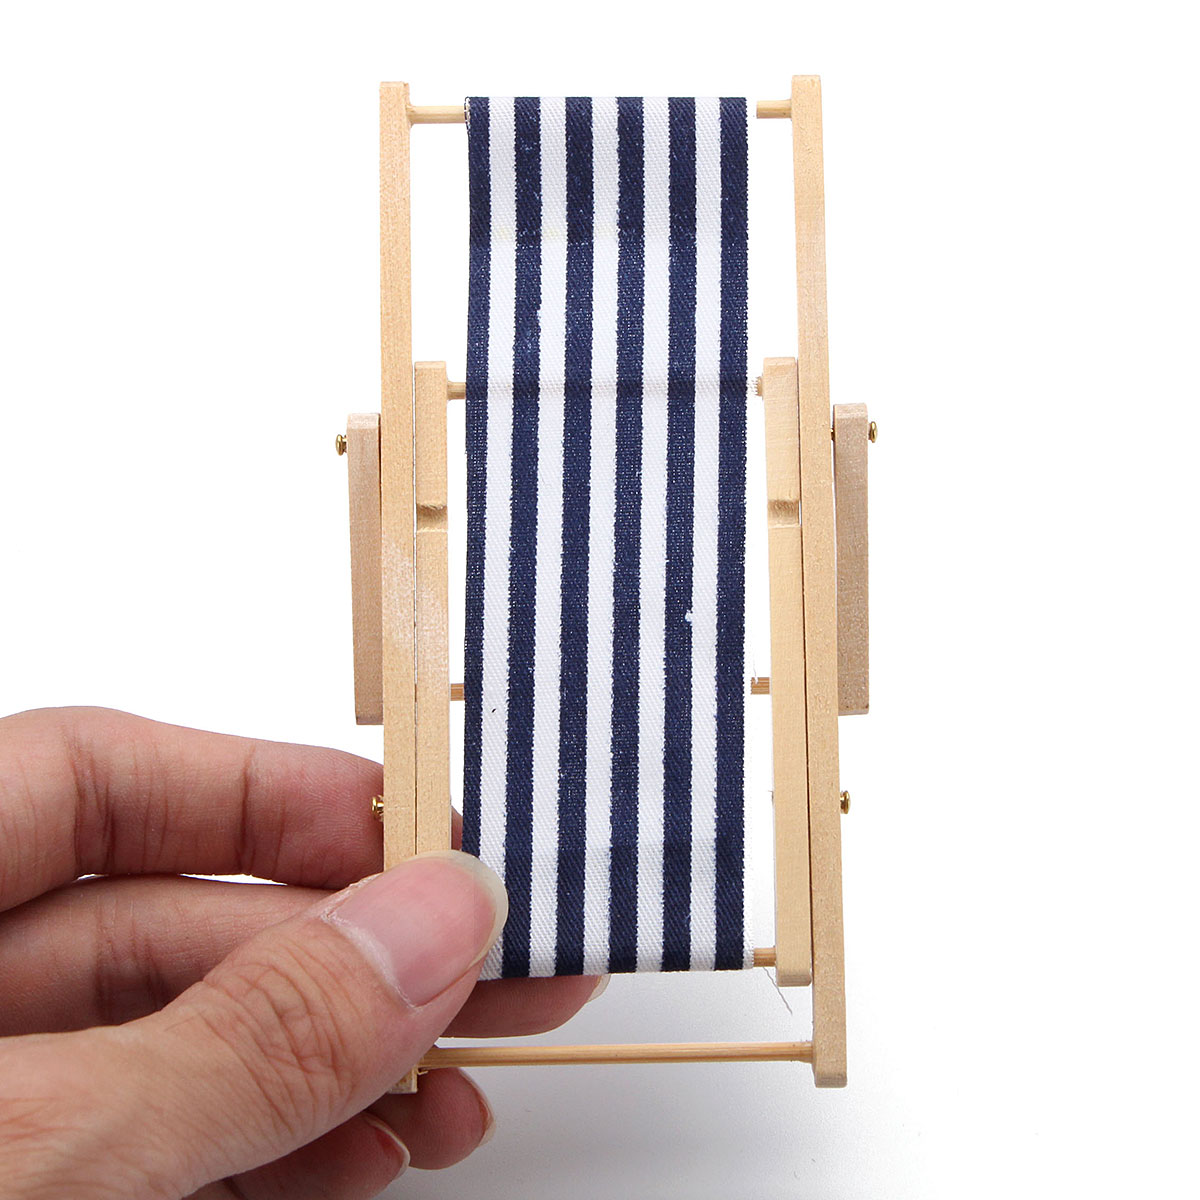 Chaise Design Miniature 1 12 Blue White Beach Chair Chaise Longue Foldable Dollhouse Miniature Decor Toy